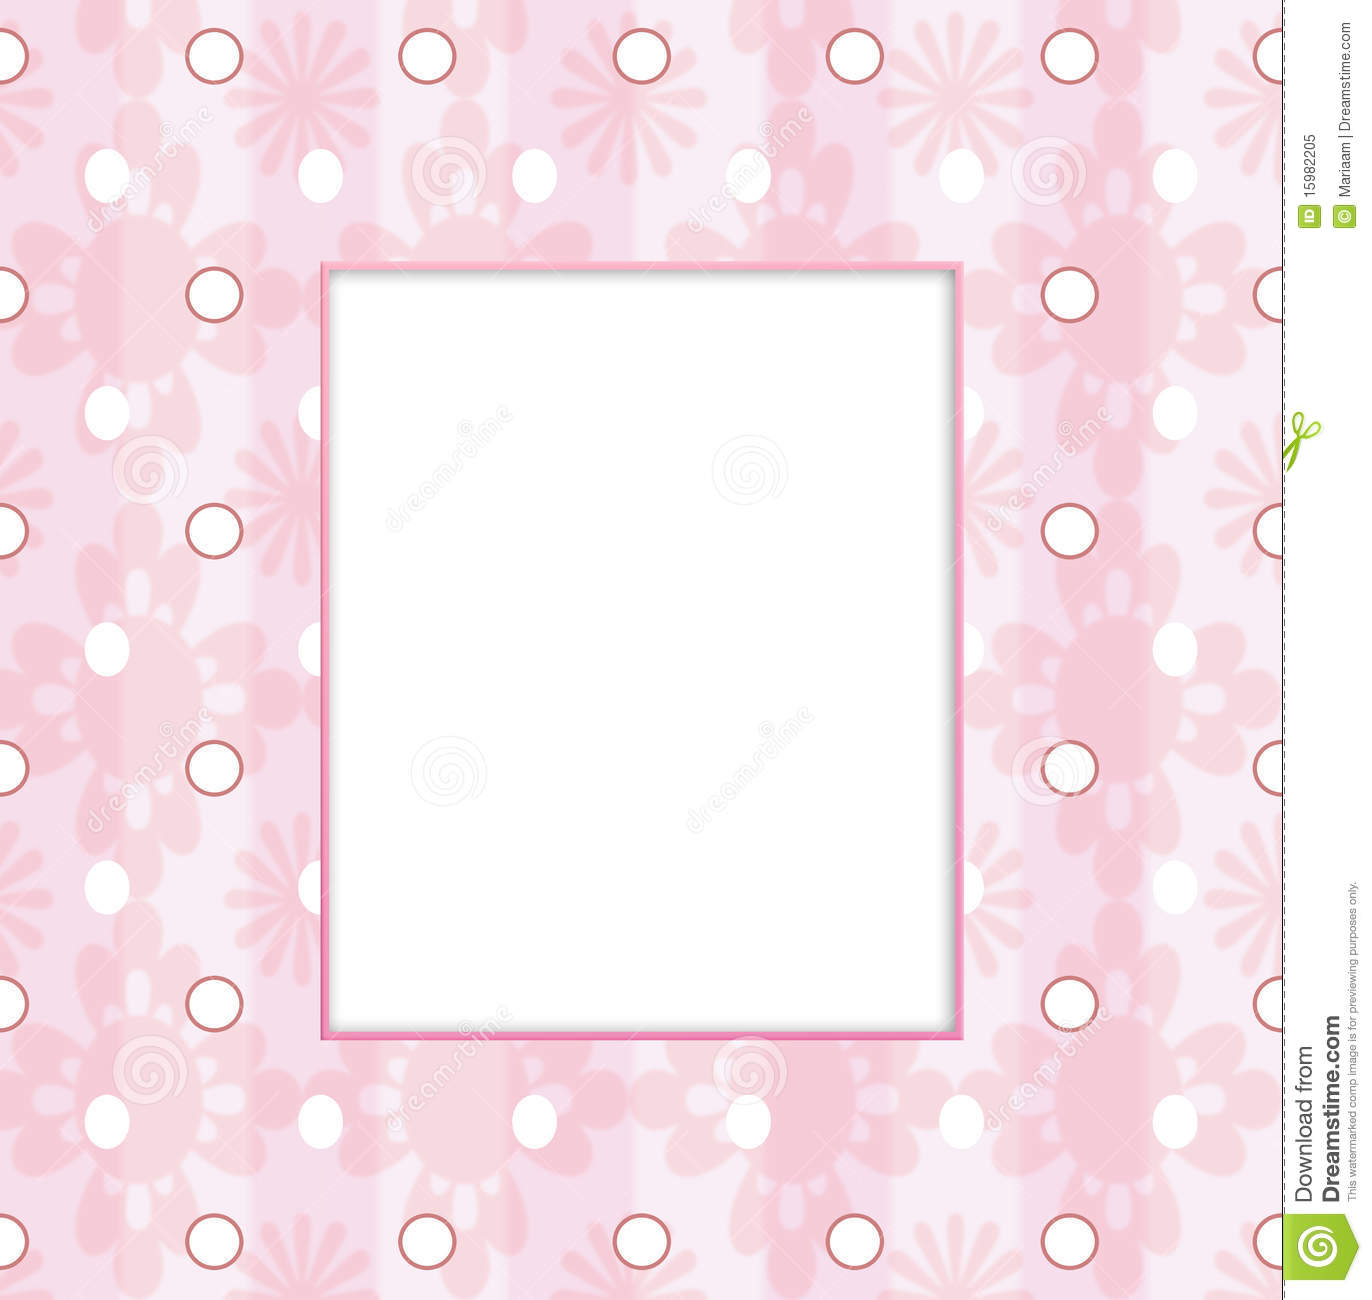 Baby girl frame stock illustration. Illustration of flowers - 15982205